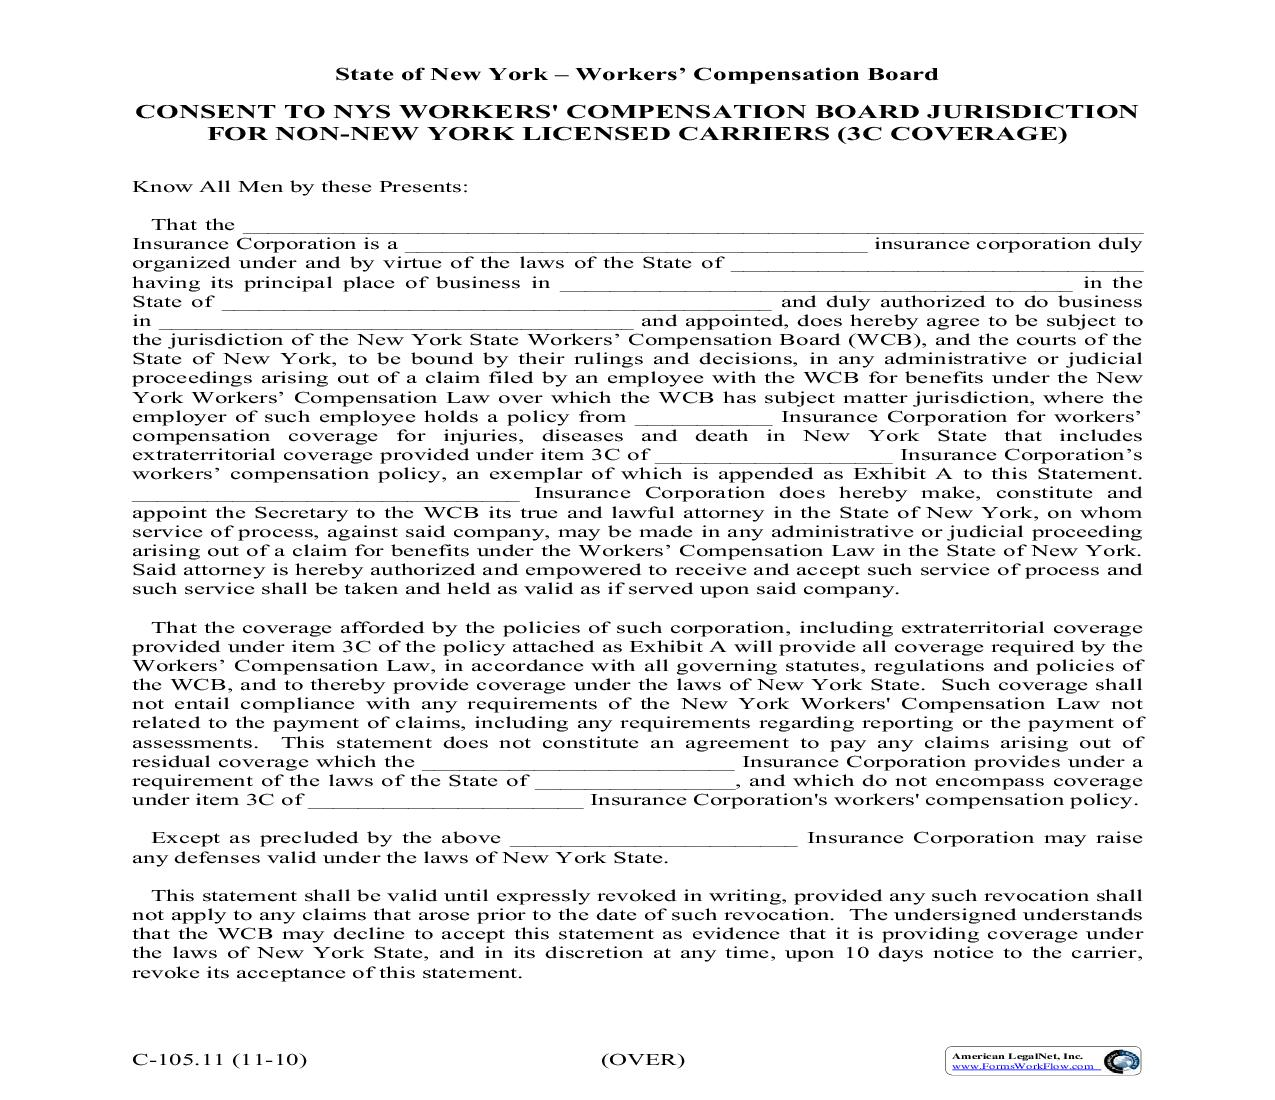 Consent To NYS Workers Compensation Board Jurisdiction For Non-New York Licensed Carriers (3C Coverage) {C105.11}   Pdf Fpdf Doc Docx   New York